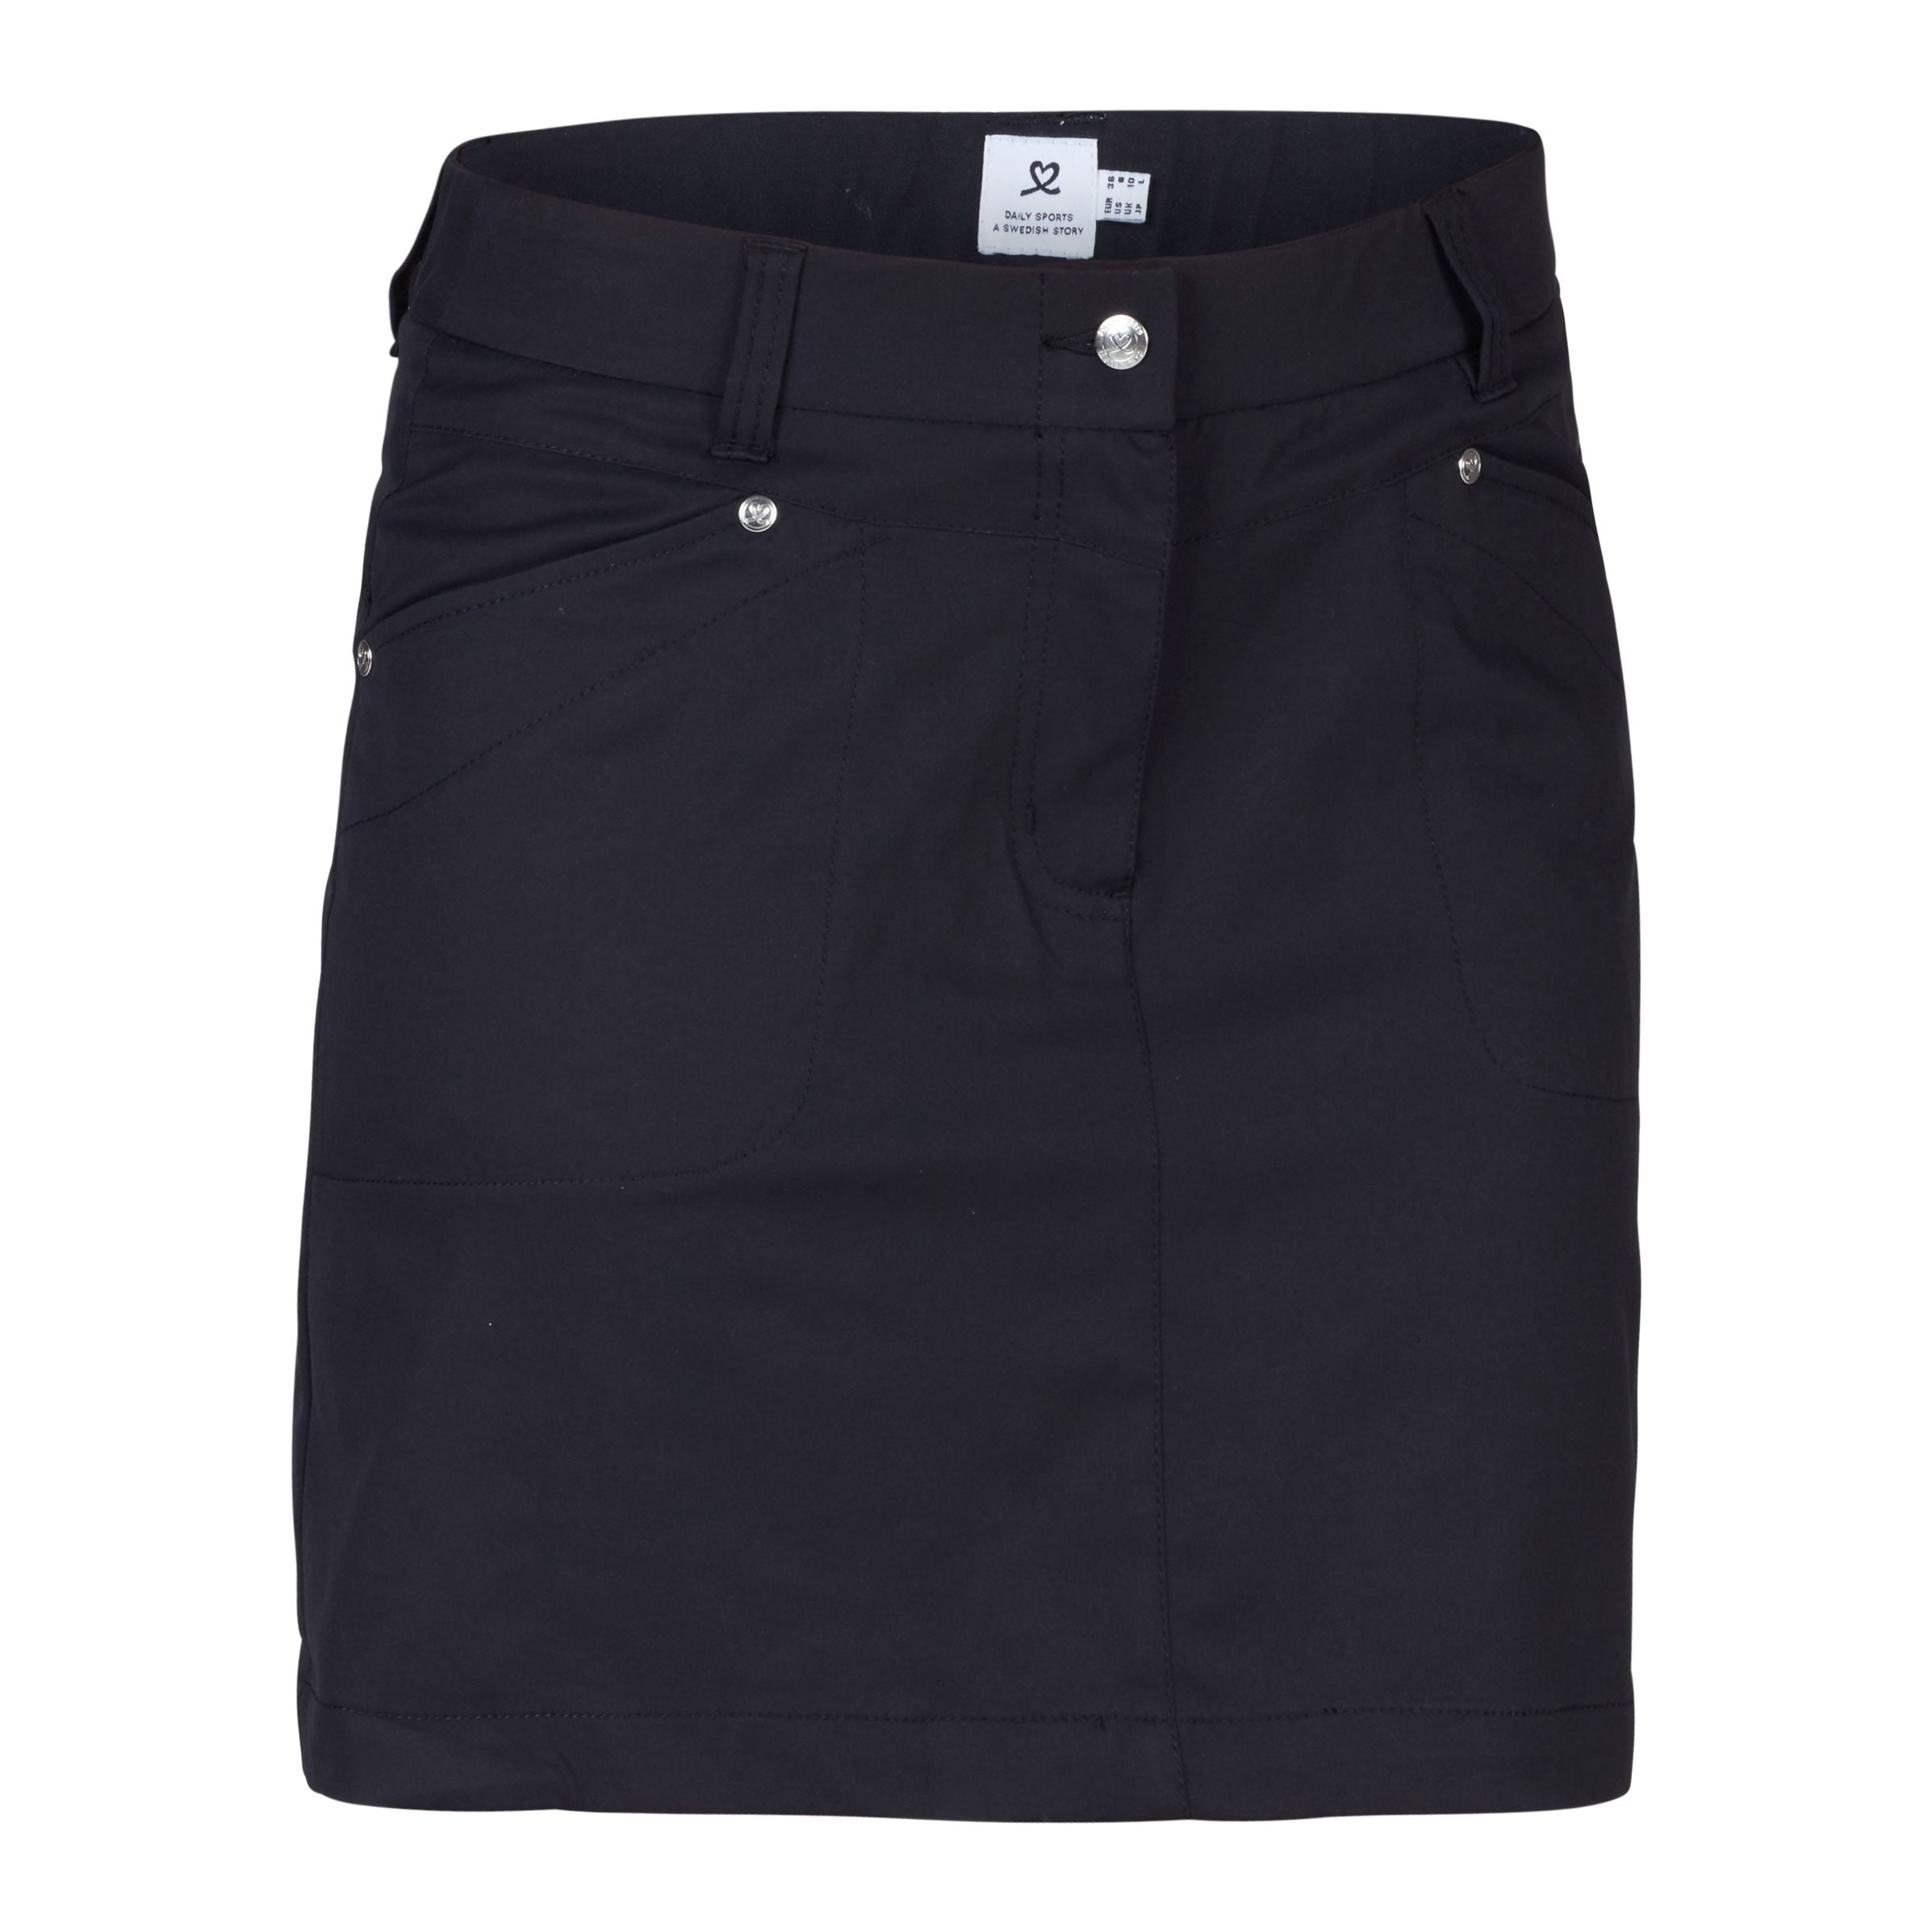 DAILY SPORTS Lyric Skort 52cm 260 Black